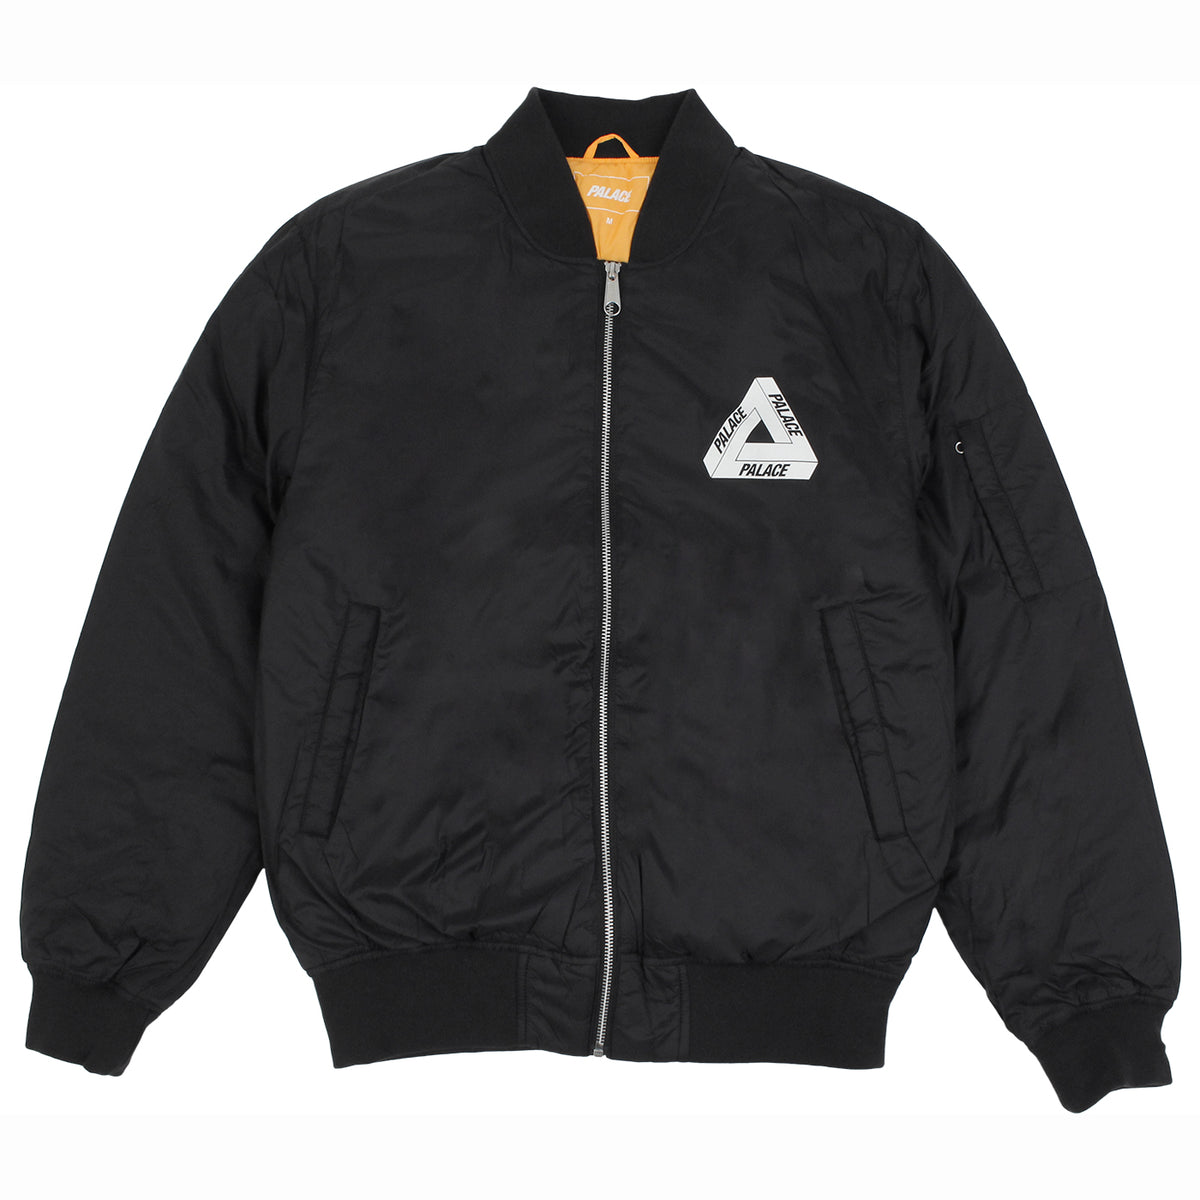 b1a43e75b8e4 Thinsulate Bomber Jacket in Anthracite by Palace